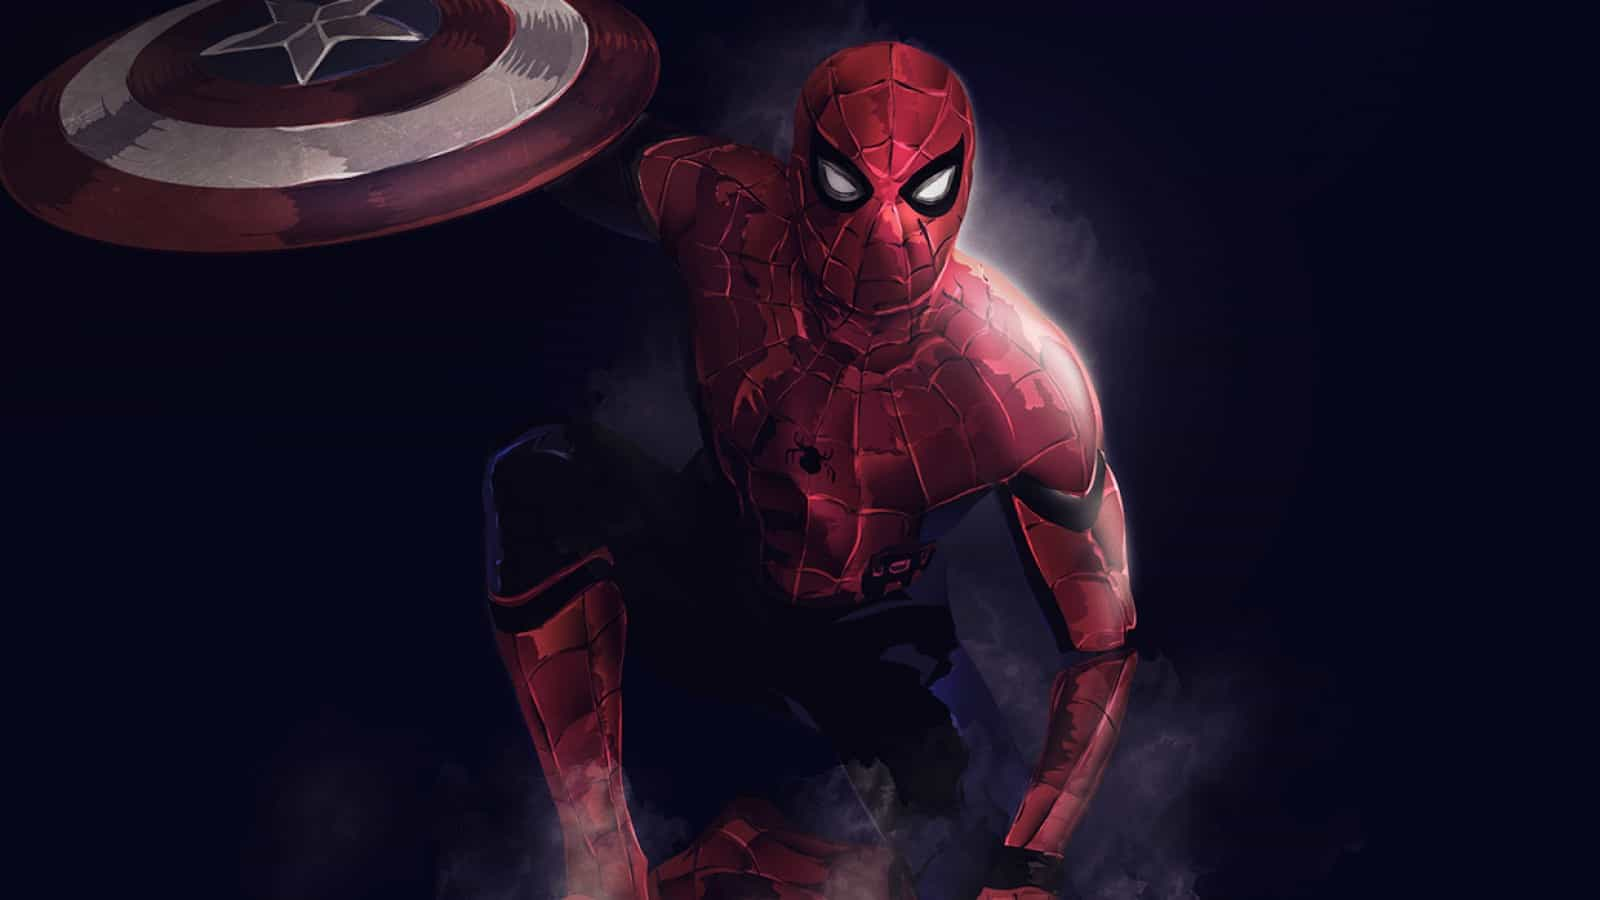 A Collection Of Spider Man Fanart You Have To Appreciate